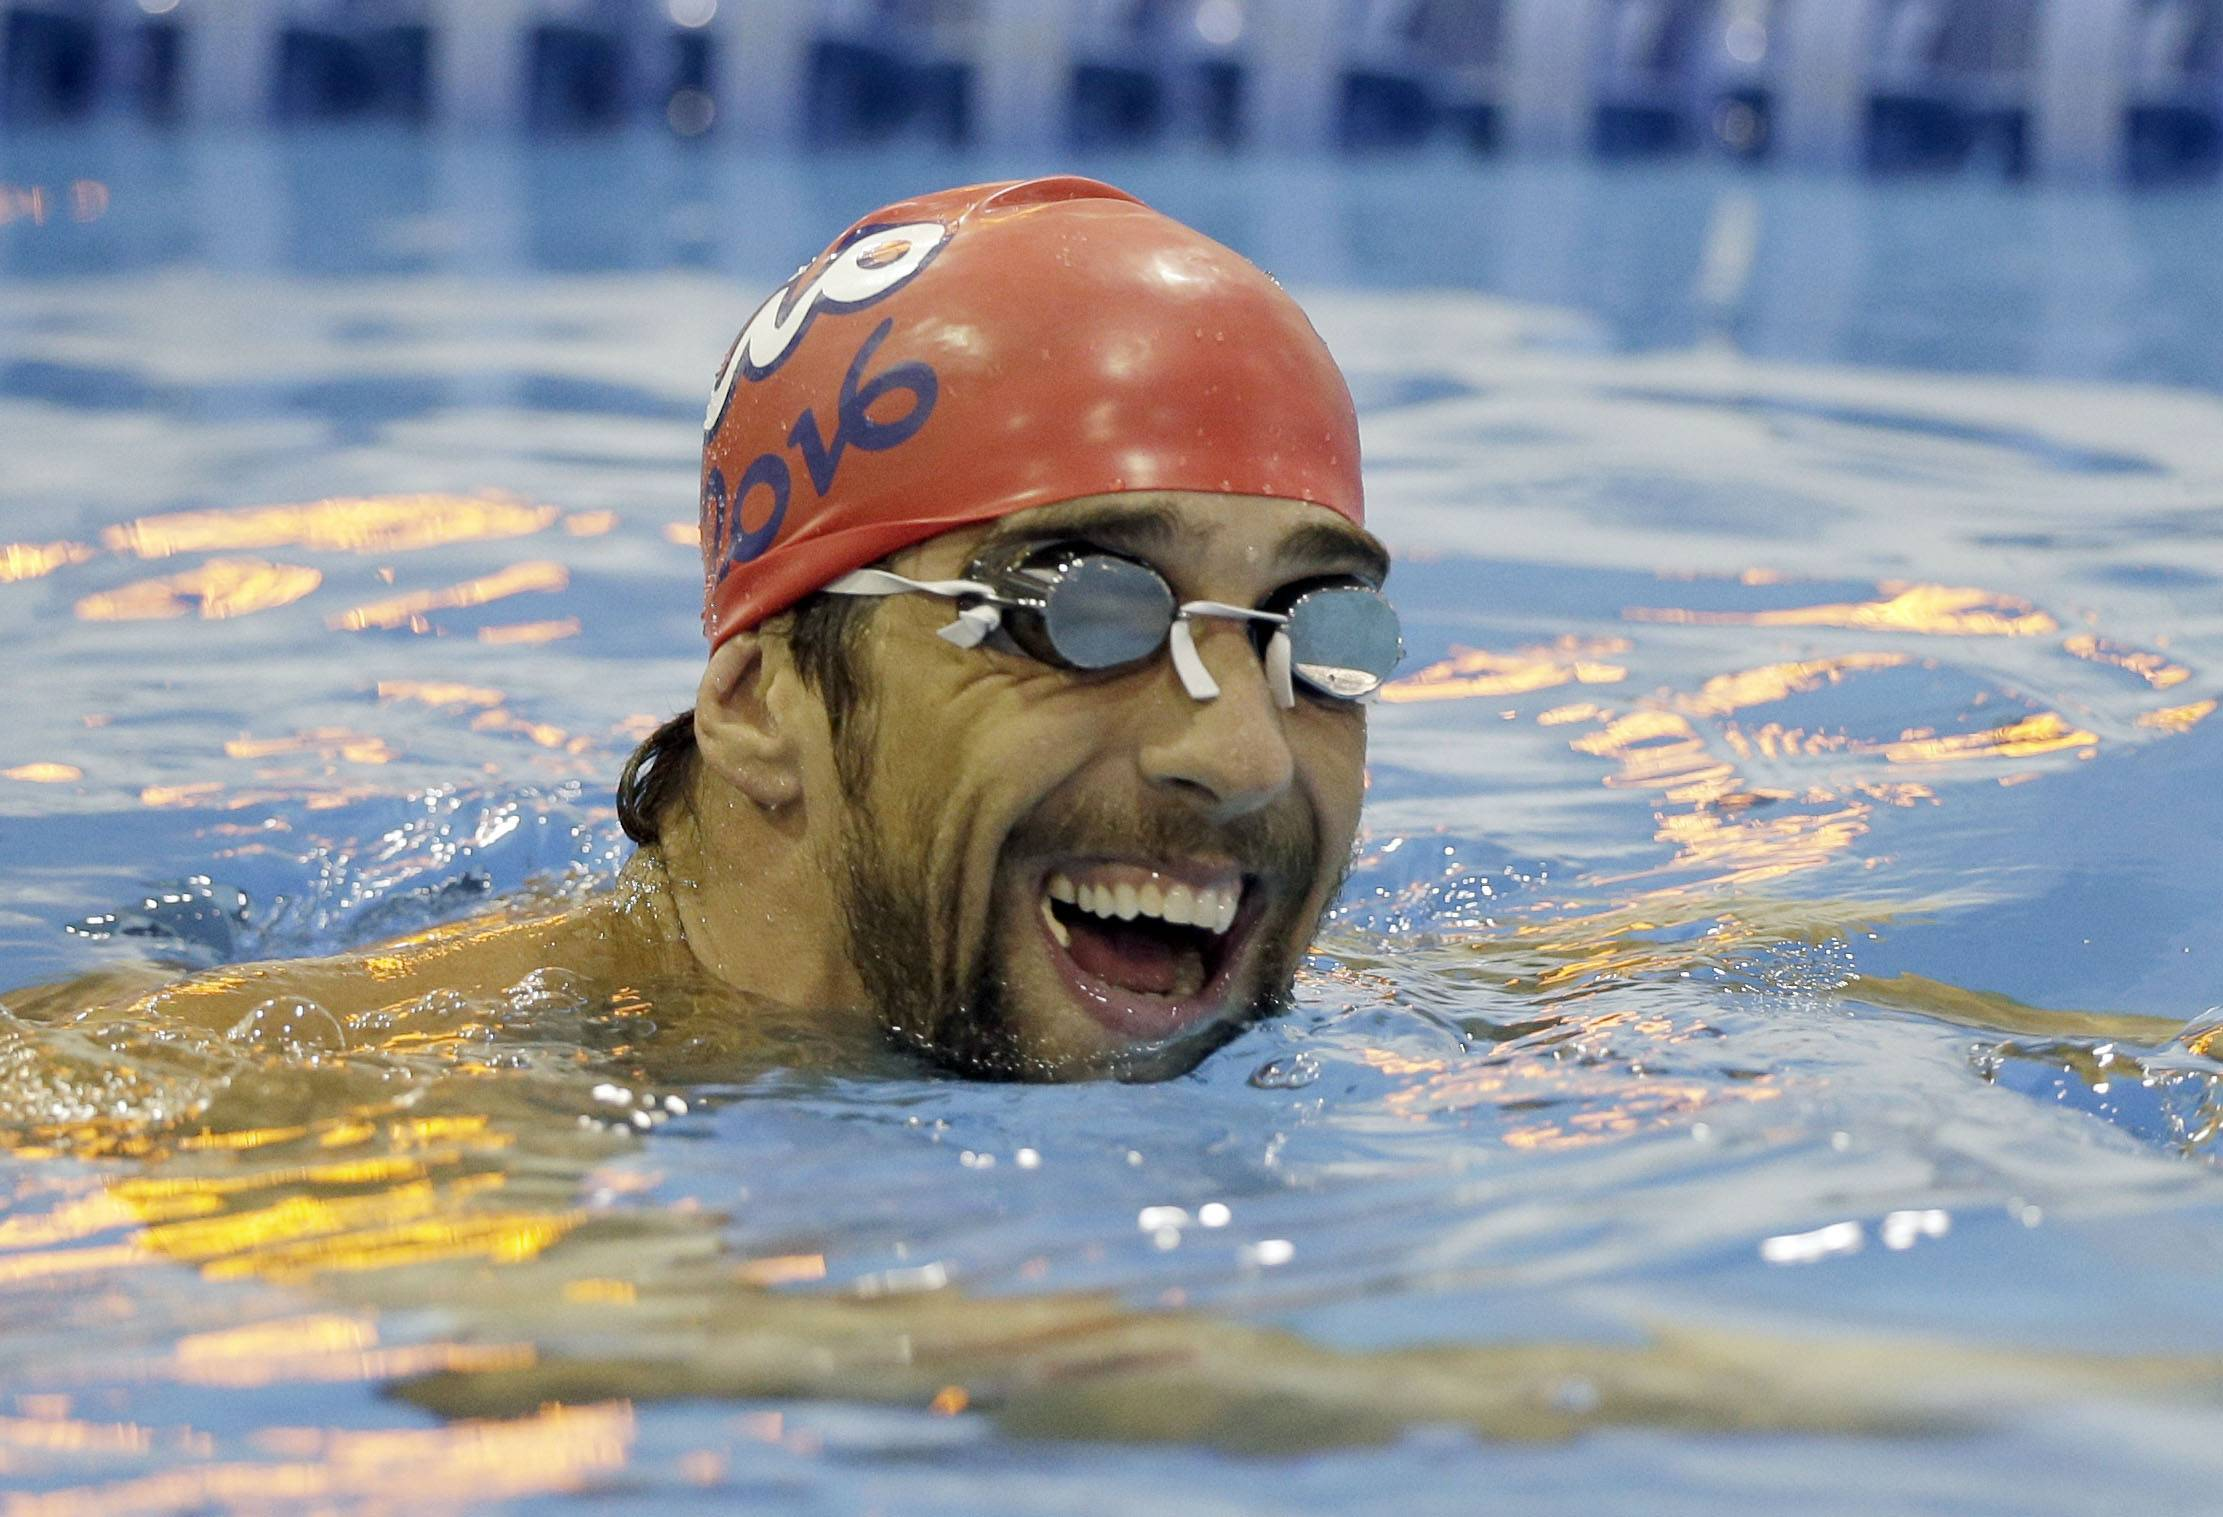 Michael Phelps warms up Thursday before the upcoming Charlotte Grand Prix swimming event in Charlotte, N.C..